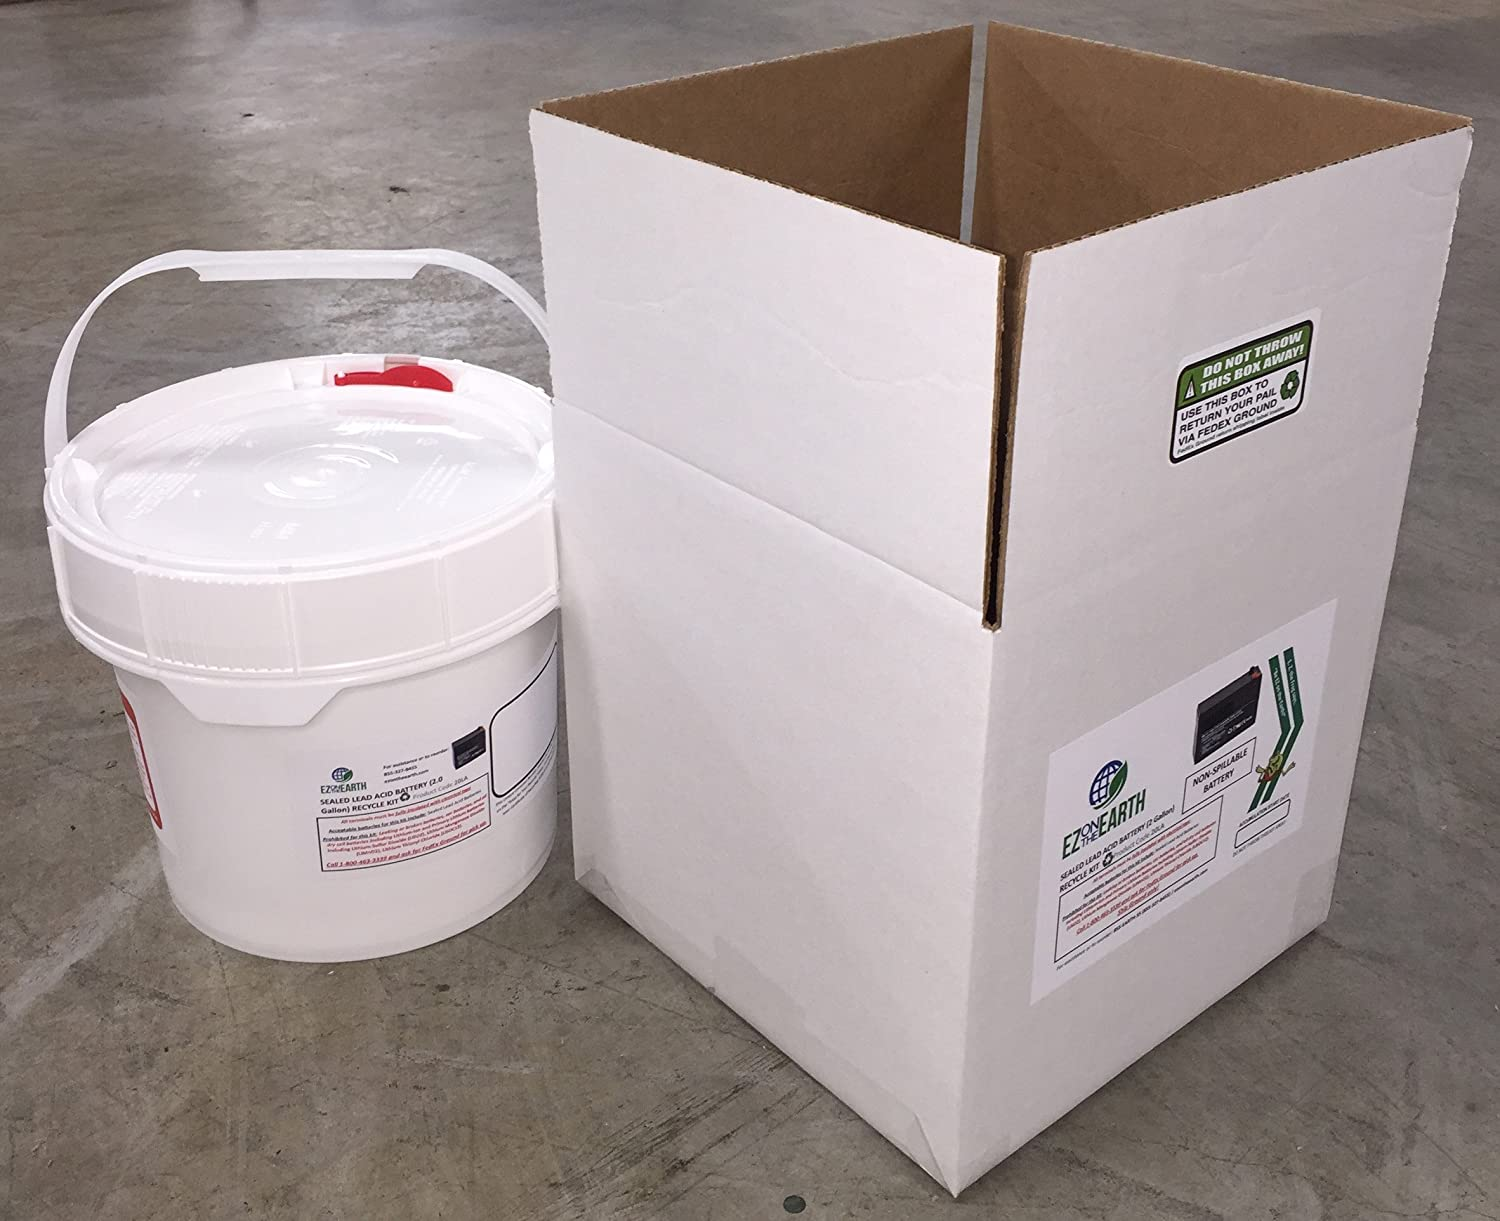 Mail-Back Recycle Kit for Lead Acid Batteries EZ on the Earth Lead Acid Battery Recycling Kit 2.0 Gallon Battery Recycling Pail Pre-Paid